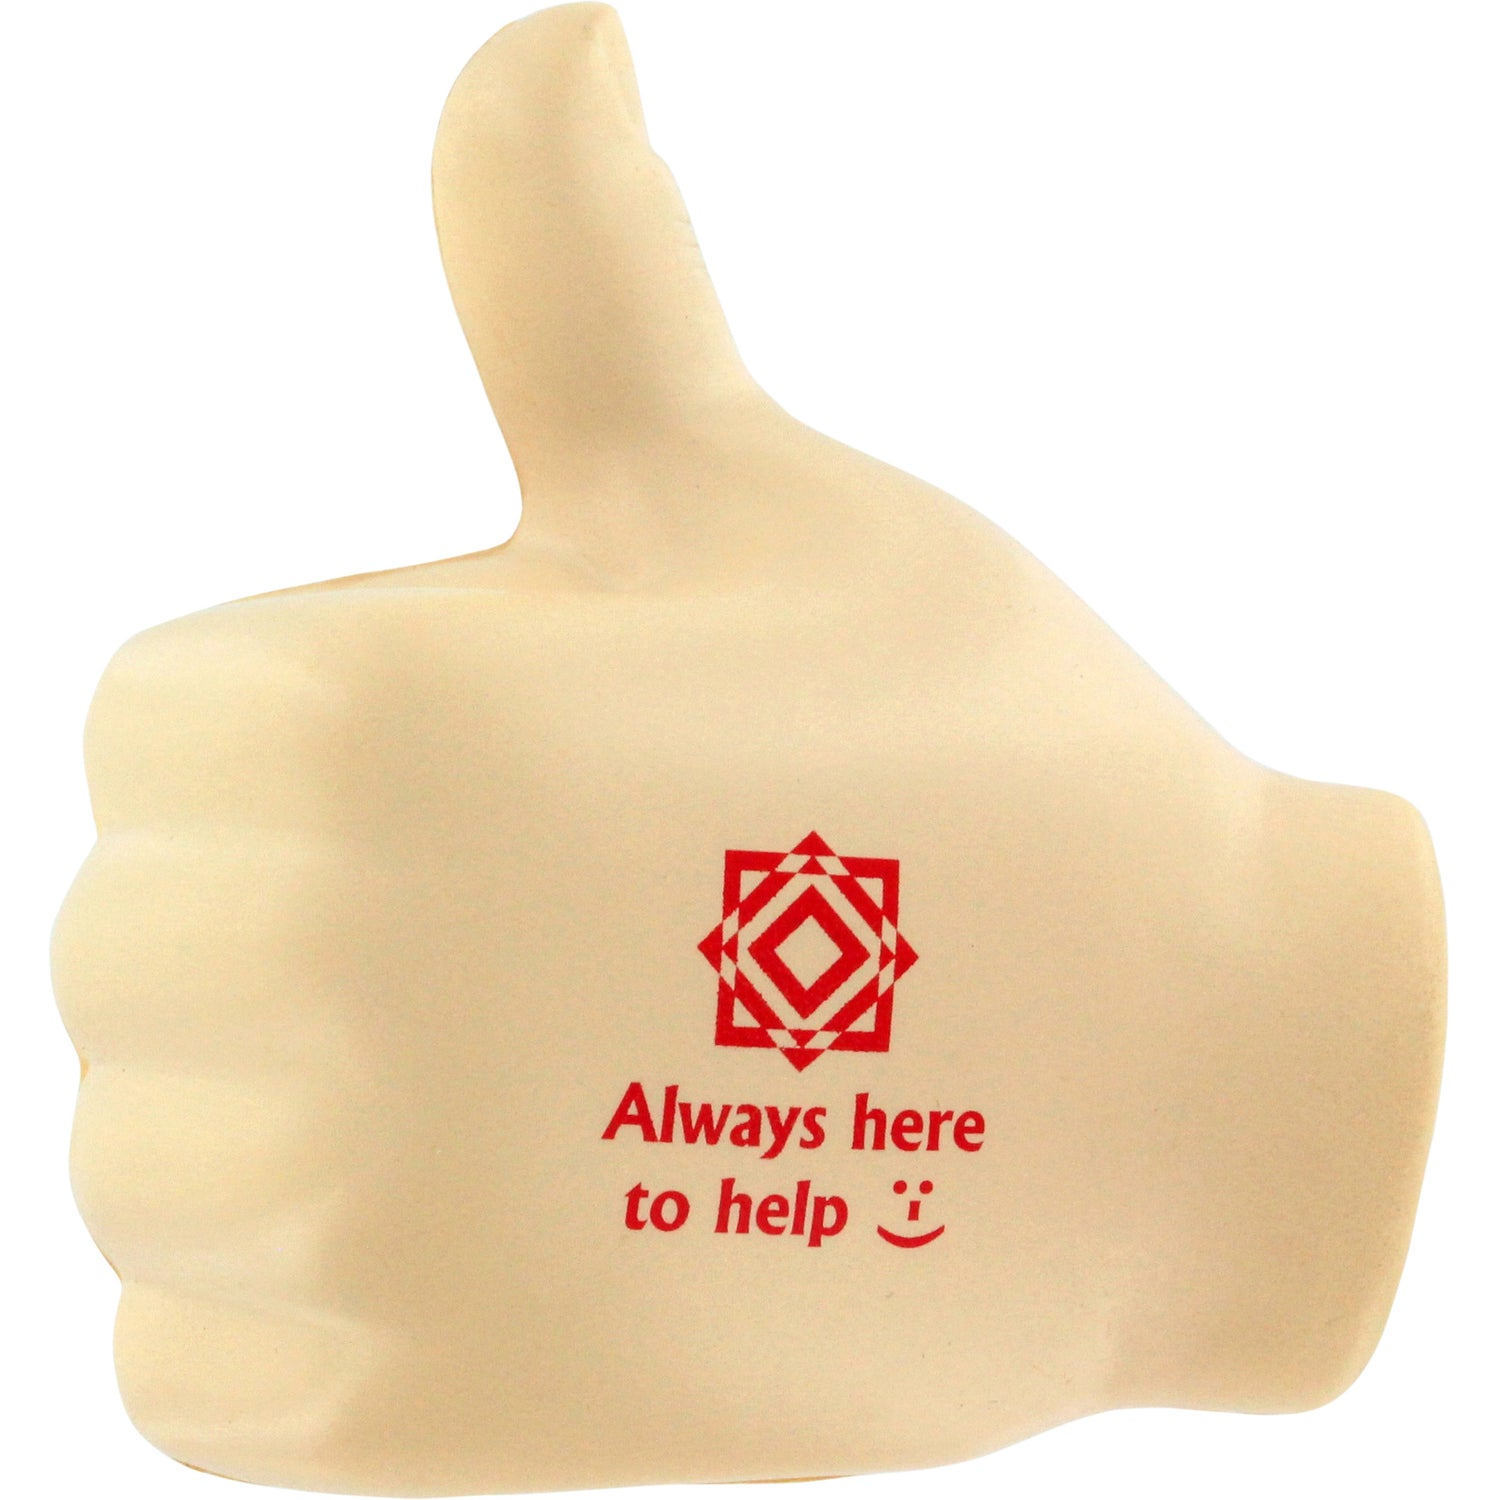 Thumbs Up Stress Ball | Custom Stress Balls | 1.73 Ea.